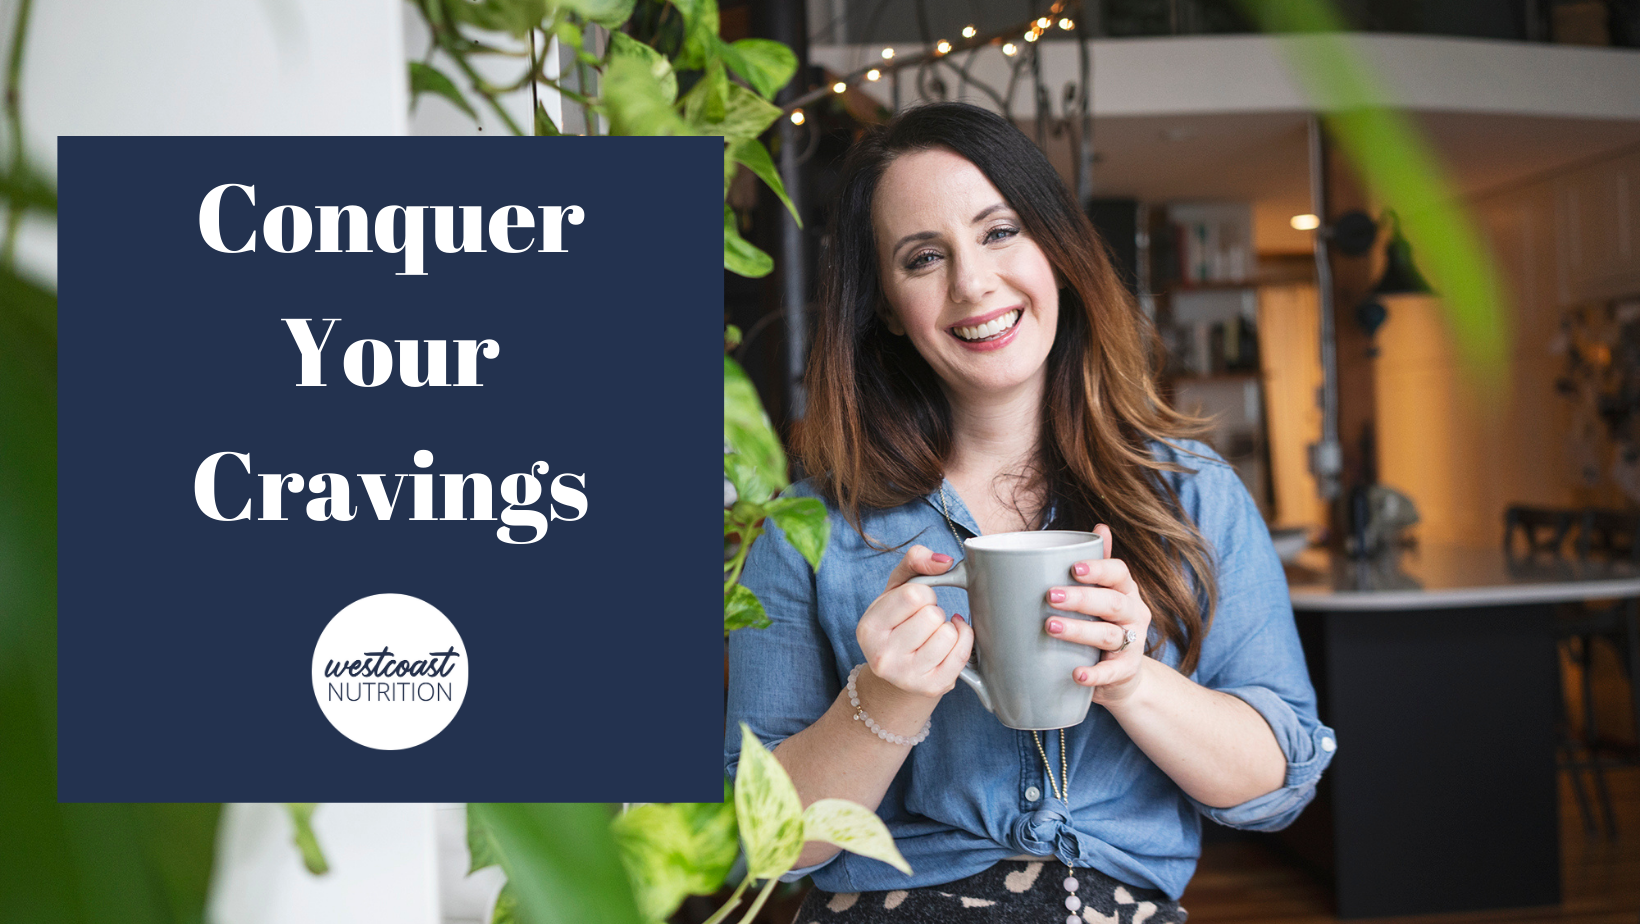 Conquer cravings and emotional eating with 6 week group program